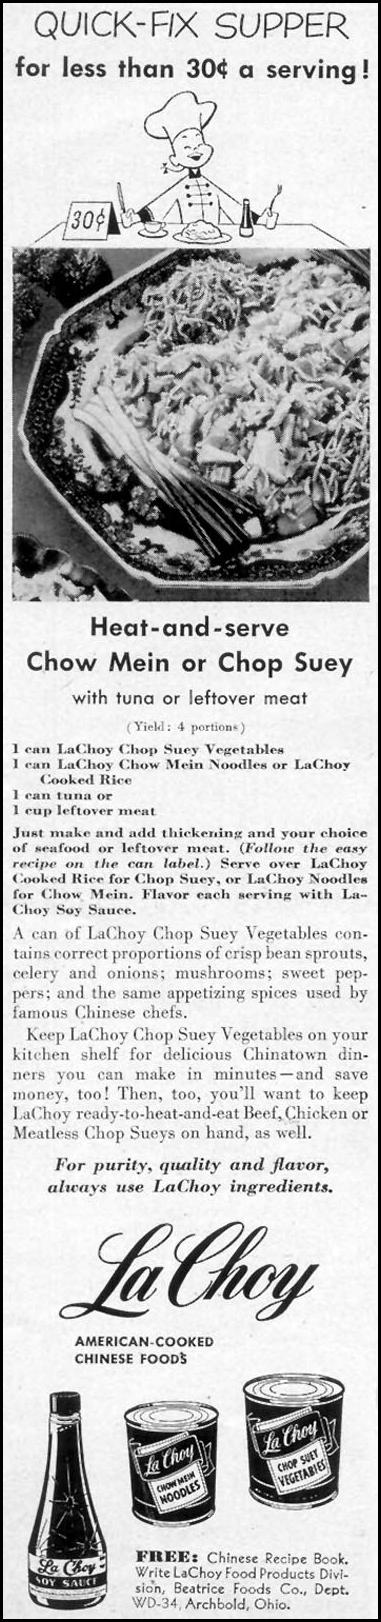 LA CHOY AMERICAN-COOKED CHINESE FOODS WOMAN'S DAY 03/01/1952 p. 158